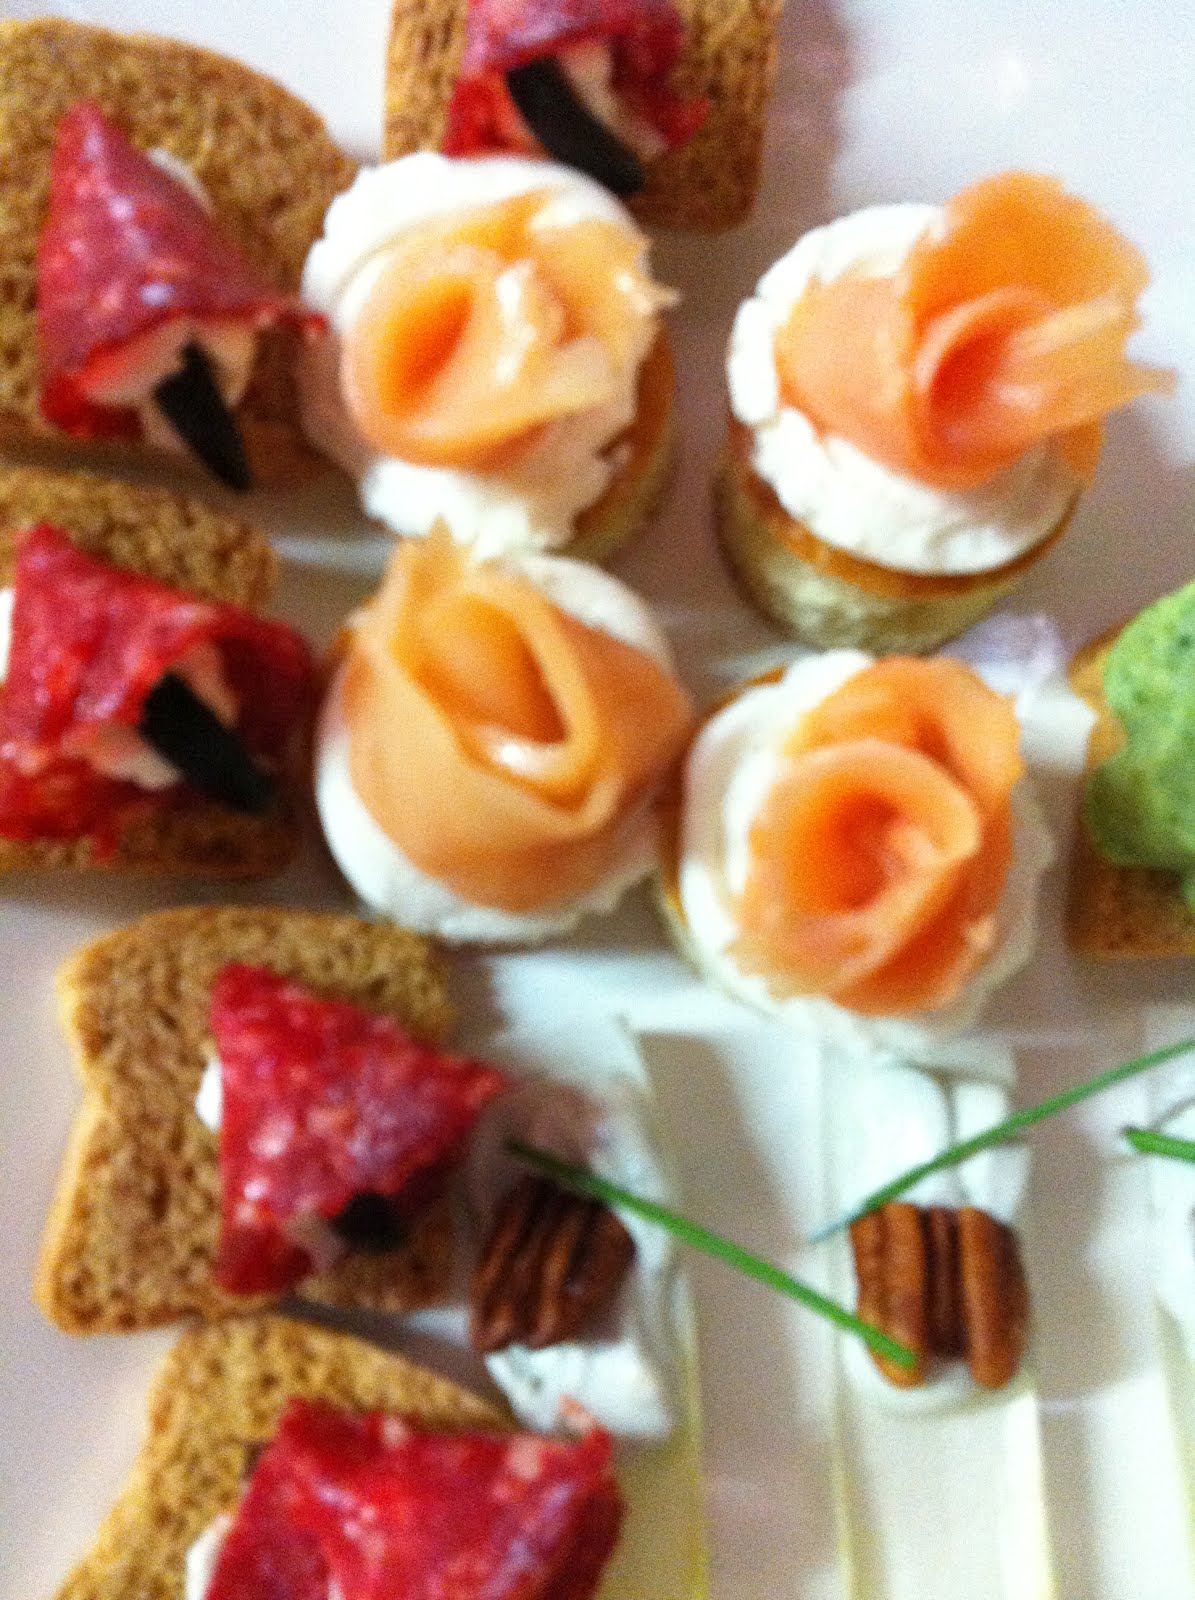 Canapes hors d 39 oeuvre 39 s tapas cupacake for Canape hors d oeuvres difference